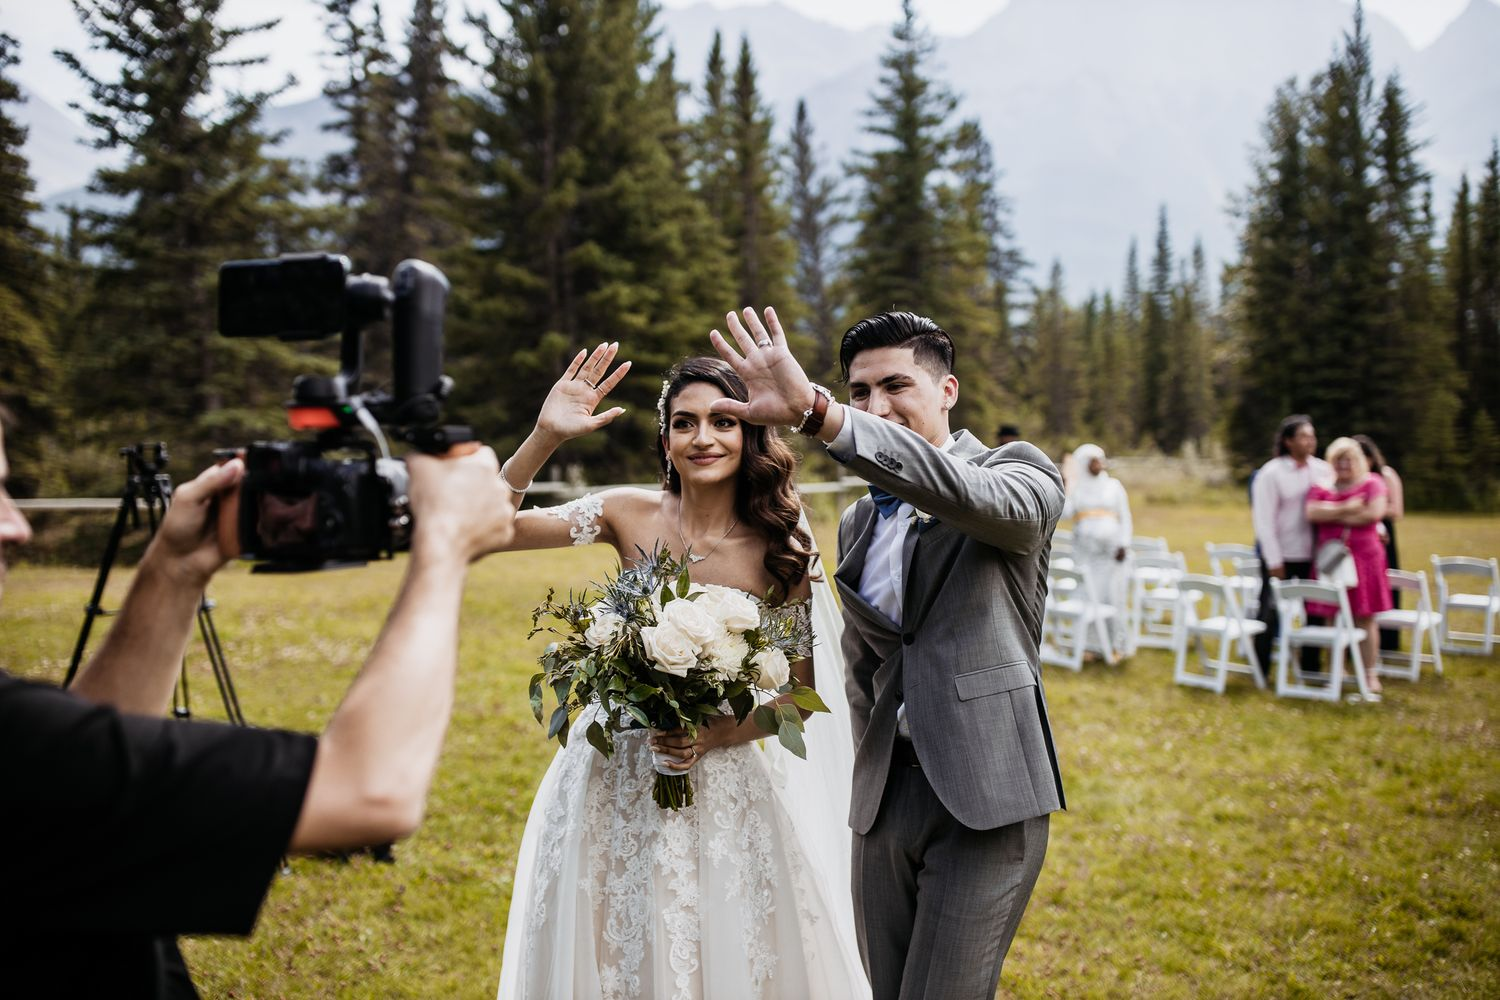 Banff and Canmore Wedding Livestream